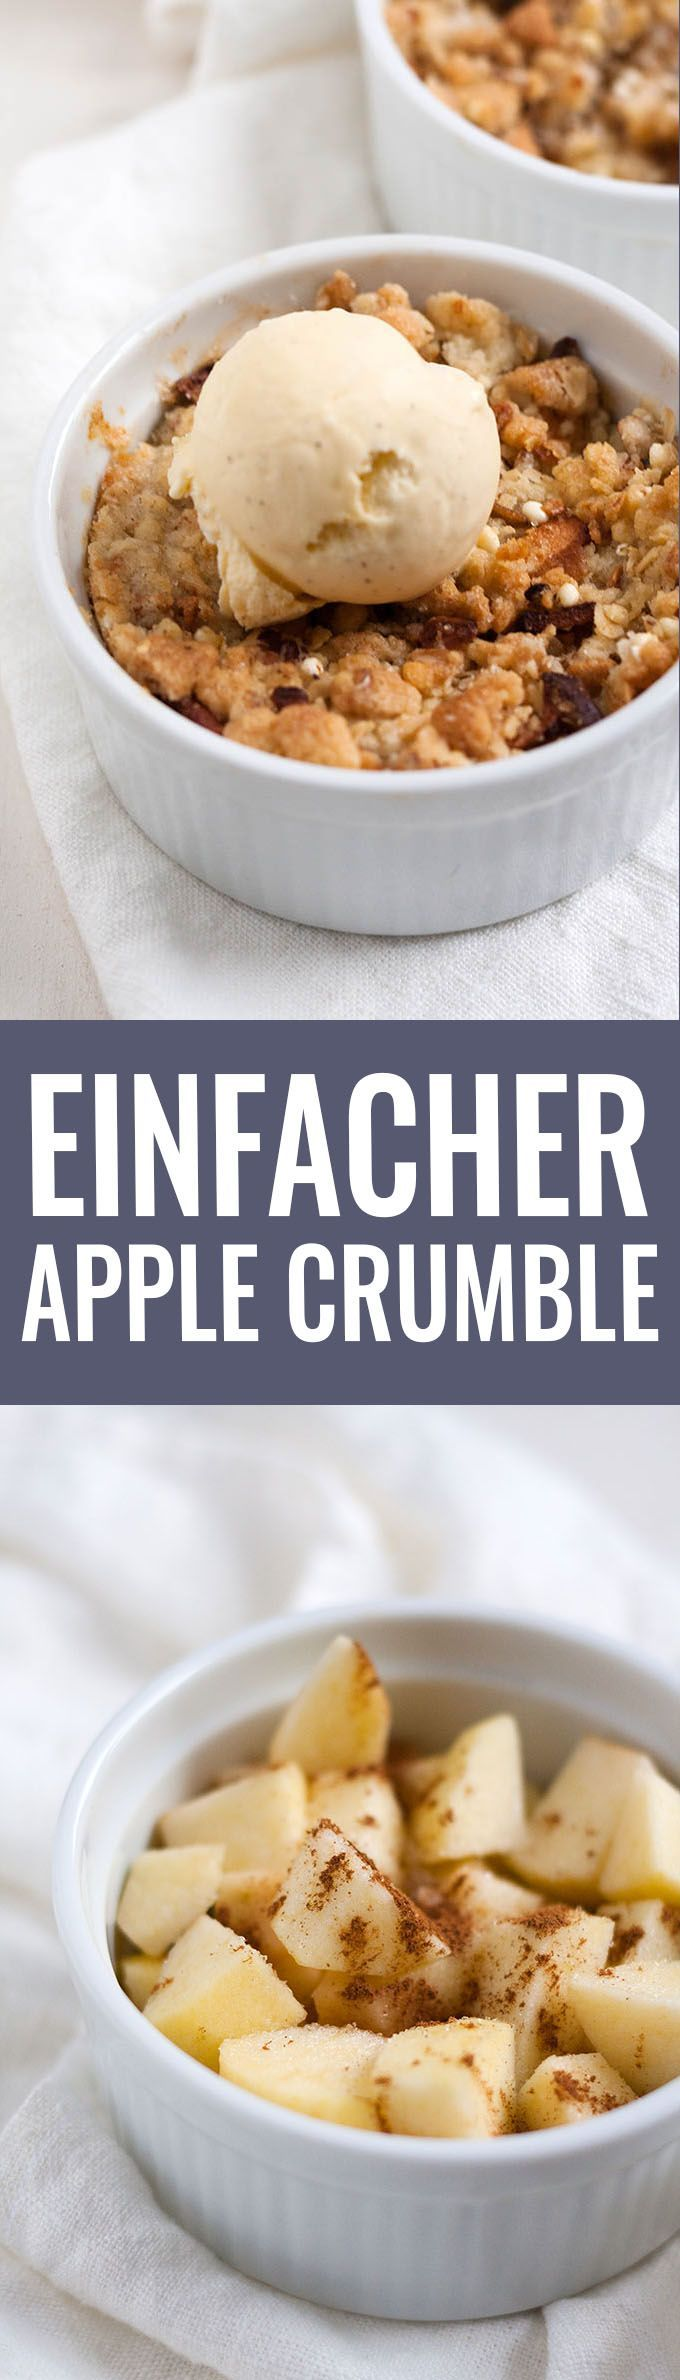 Einfacher Apple Crumble #quickcookies